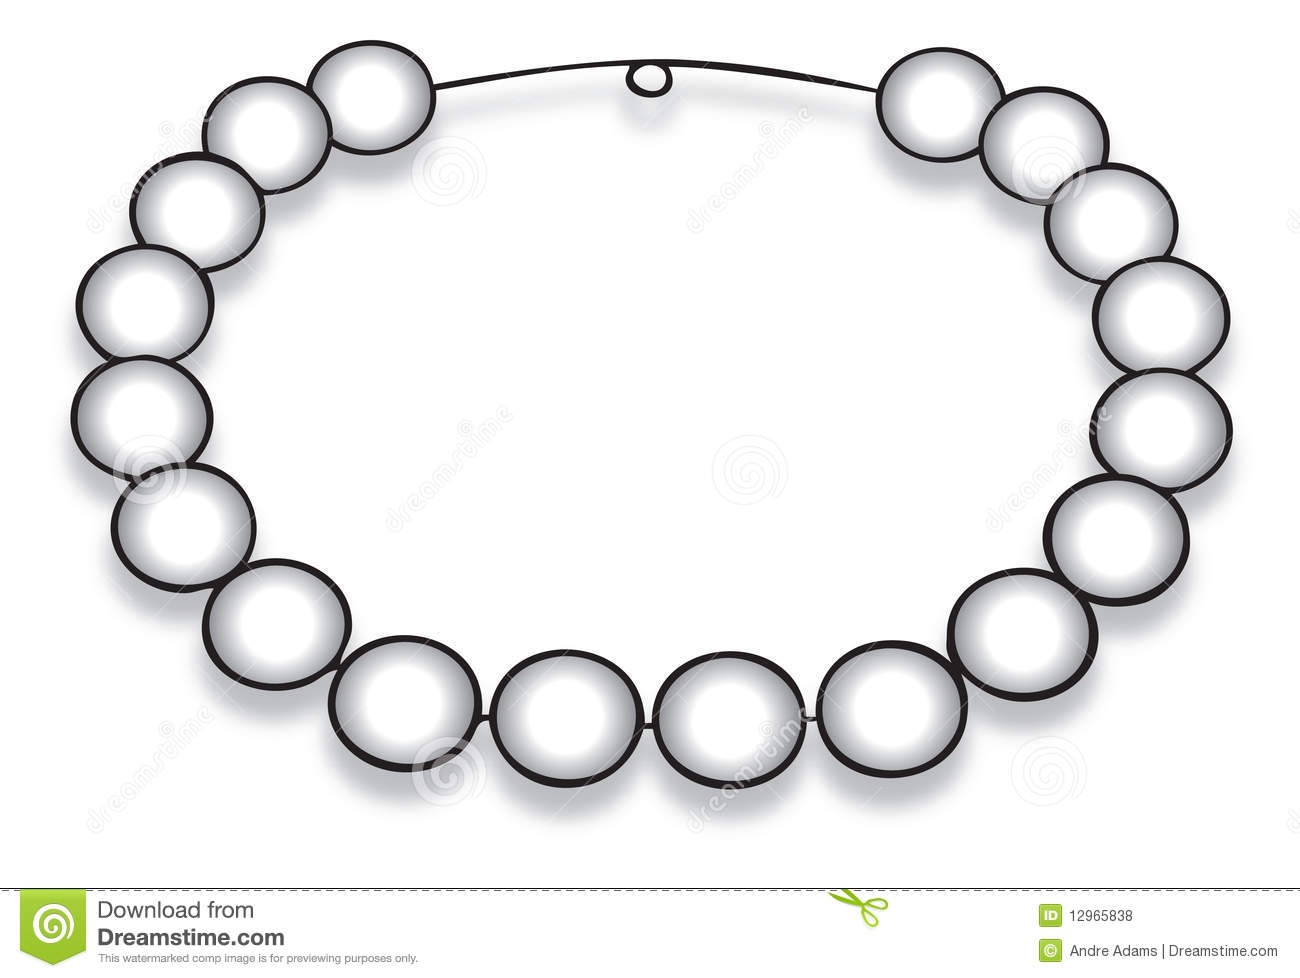 Necklace clipart for kid #7